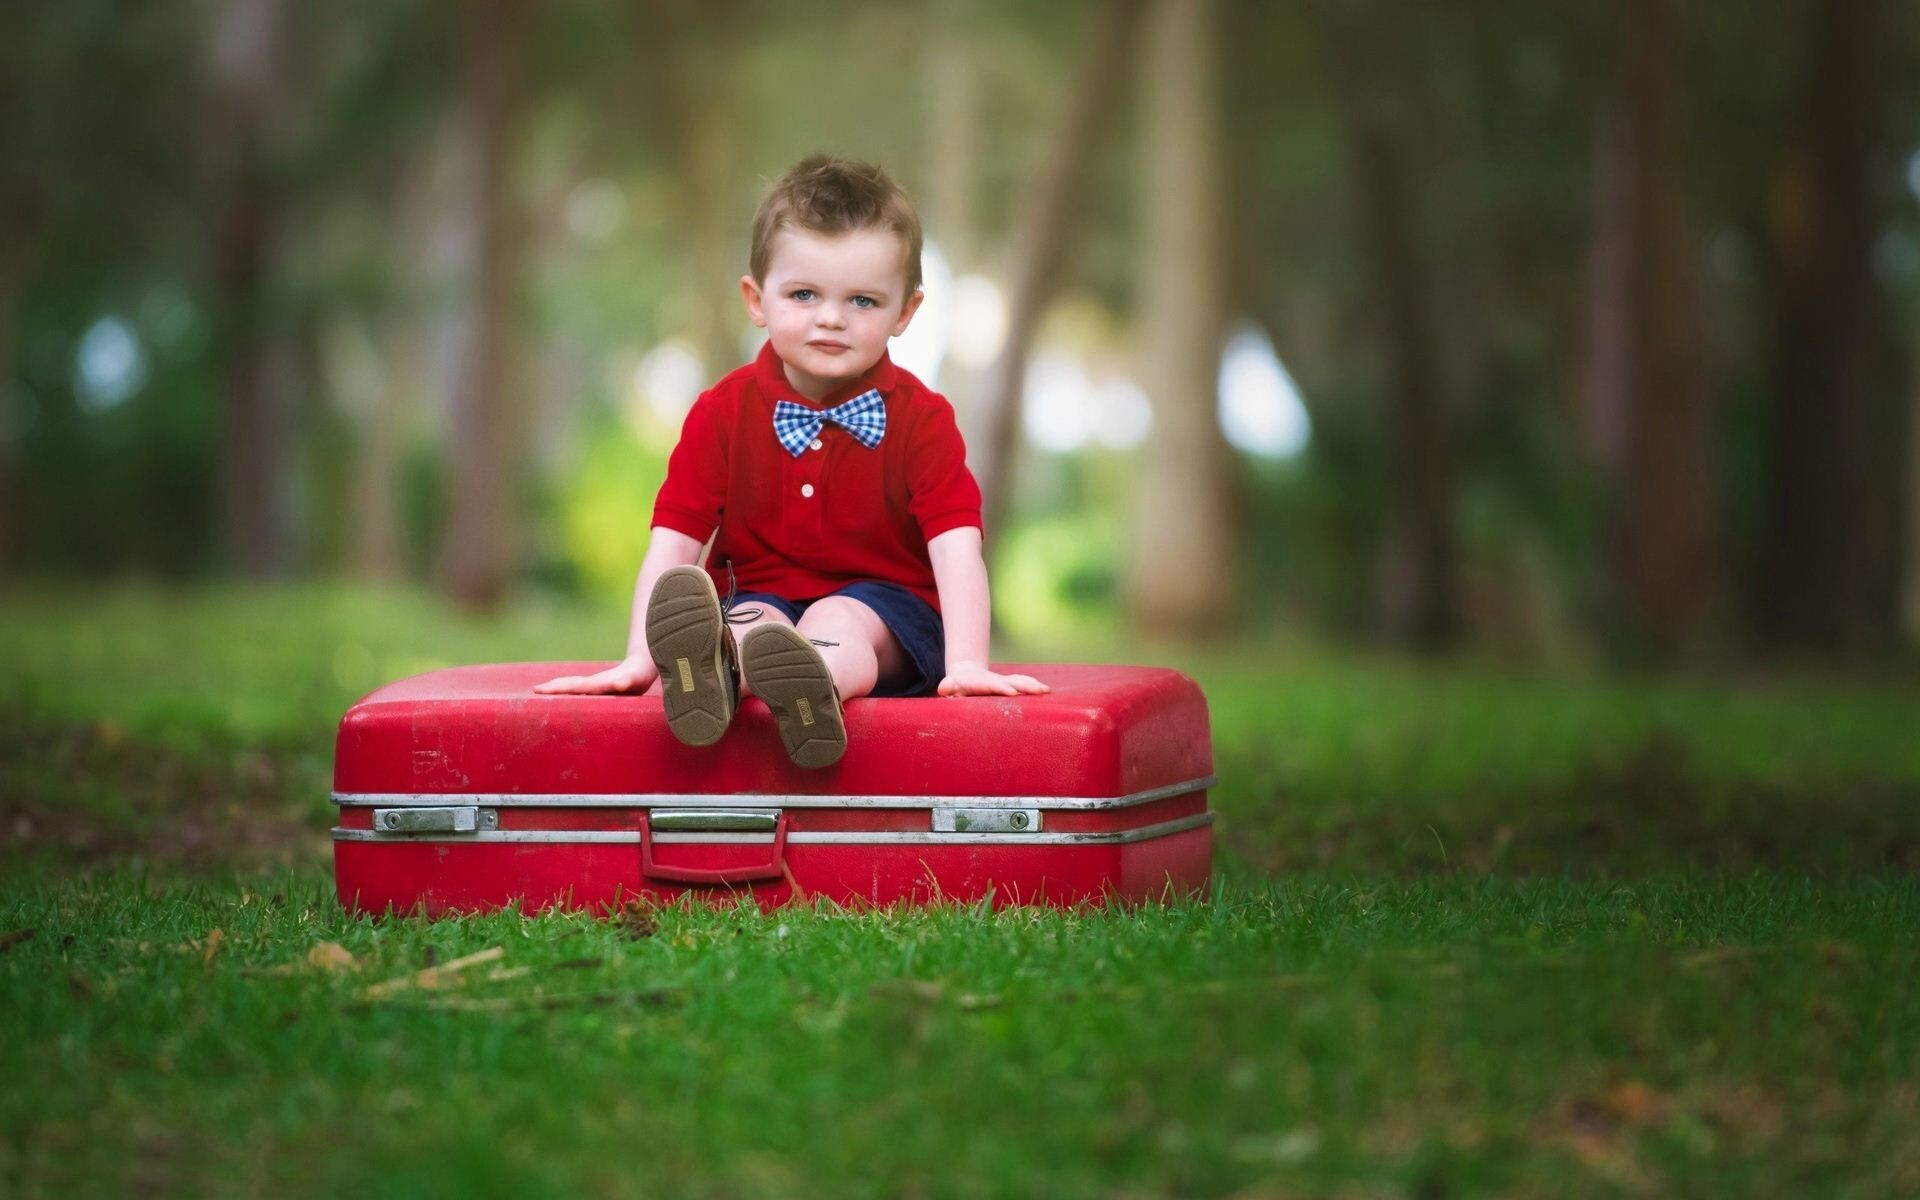 Hd laptop background of cute baby boy in red cloth photos hd wallpapers